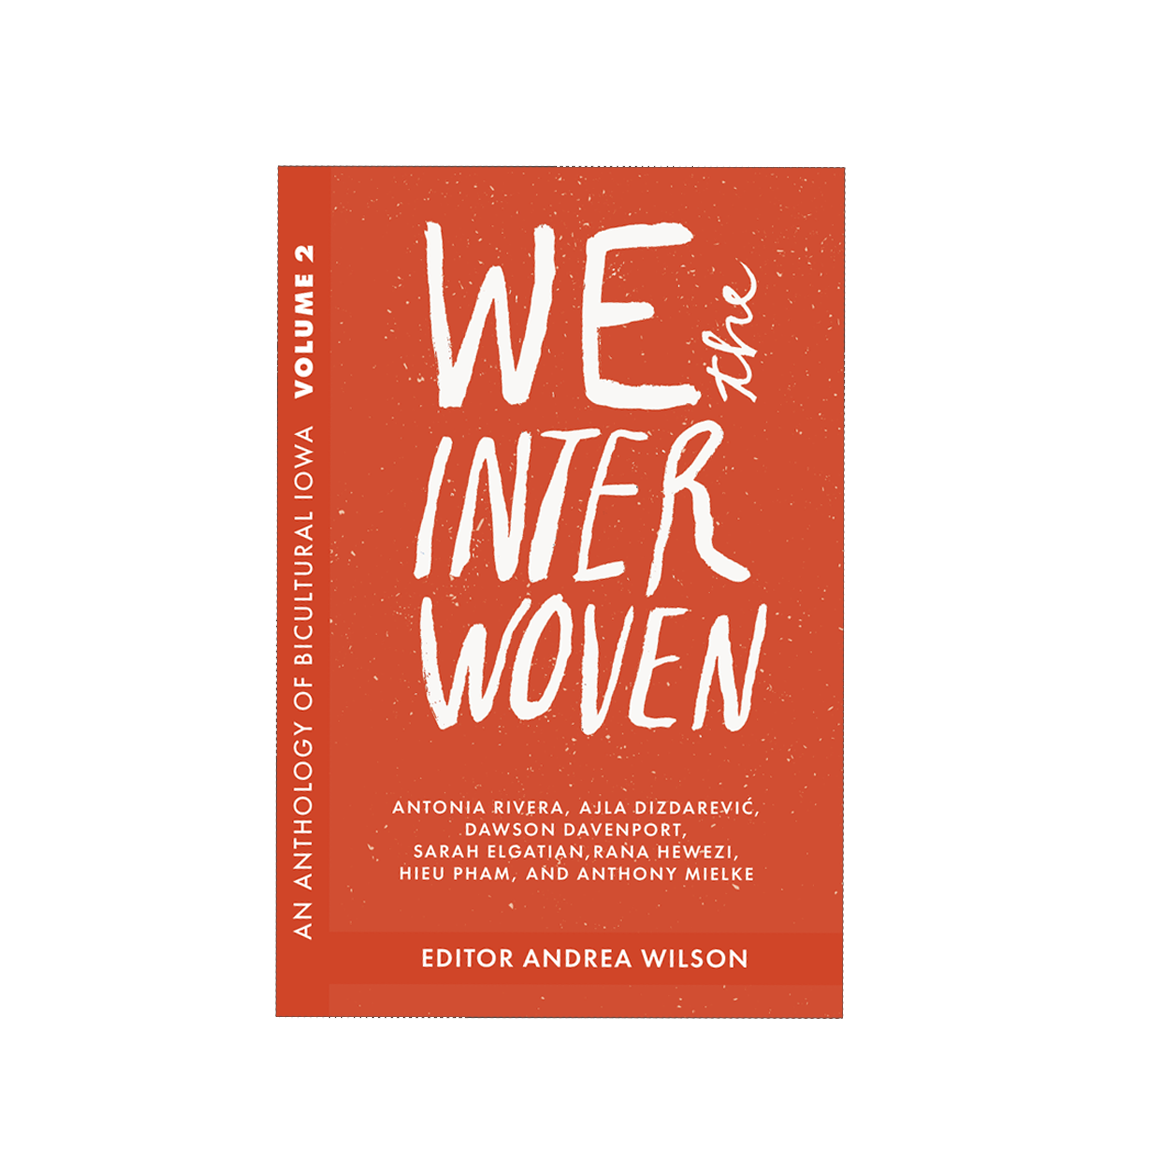 IWH book cover.png